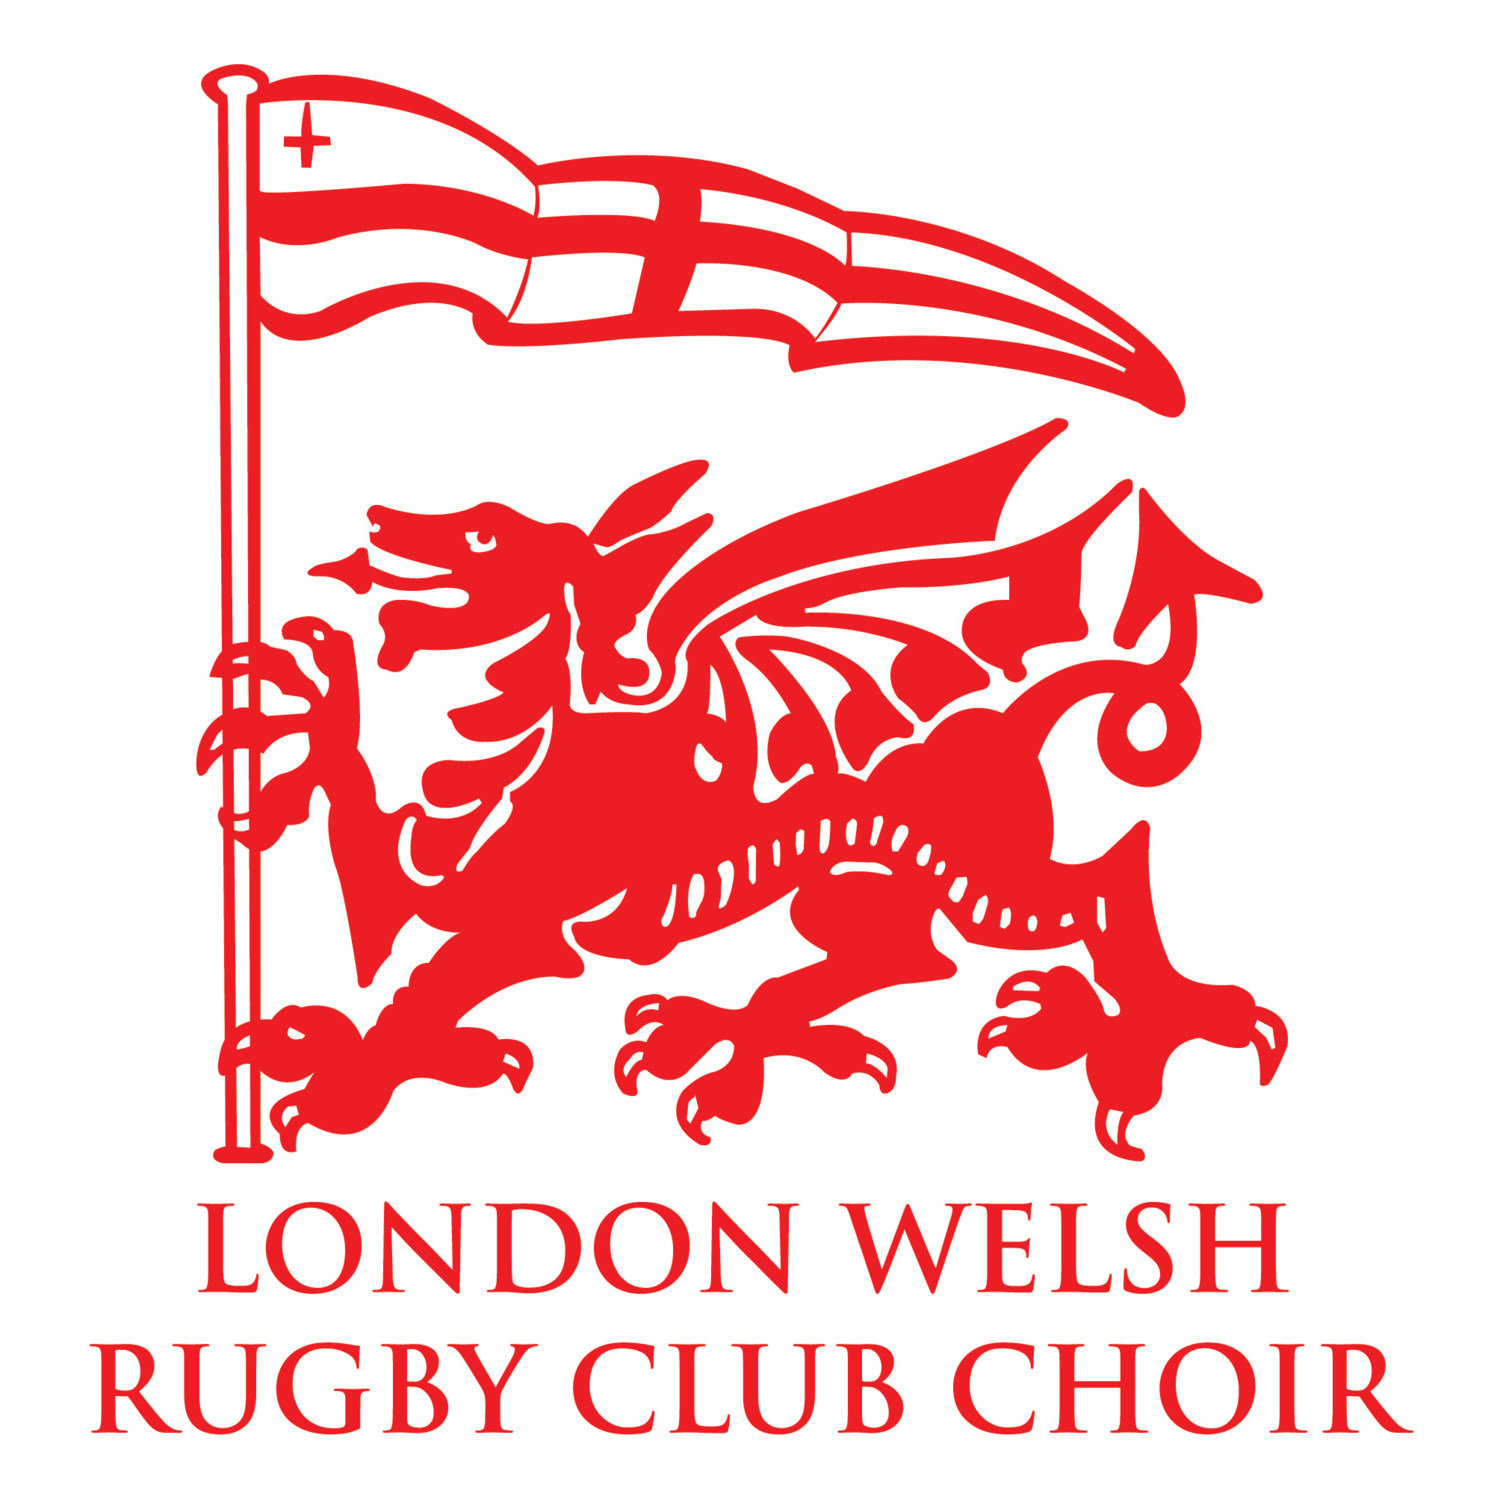 London Welsh Rugby Club Choir